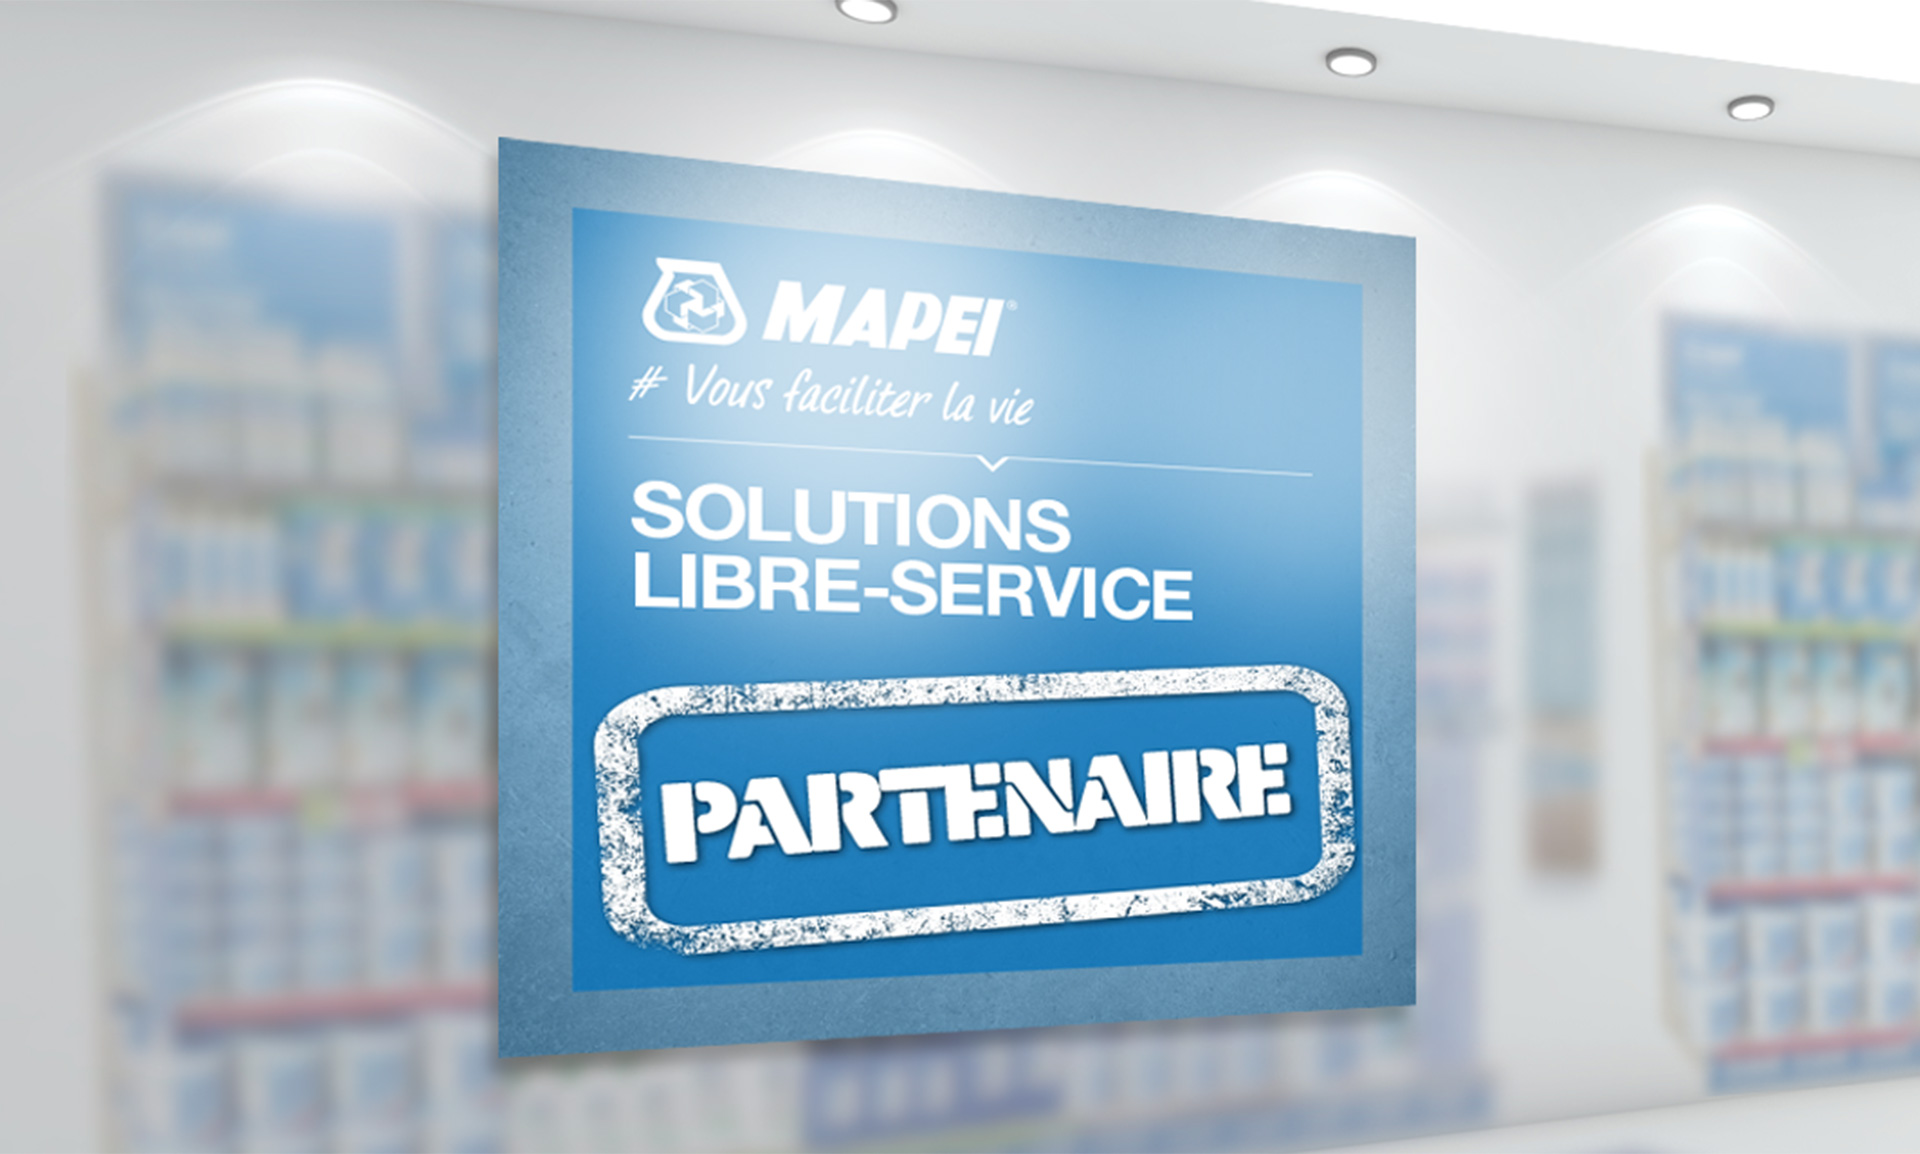 Solution Libre-service MAPEI by Convergence